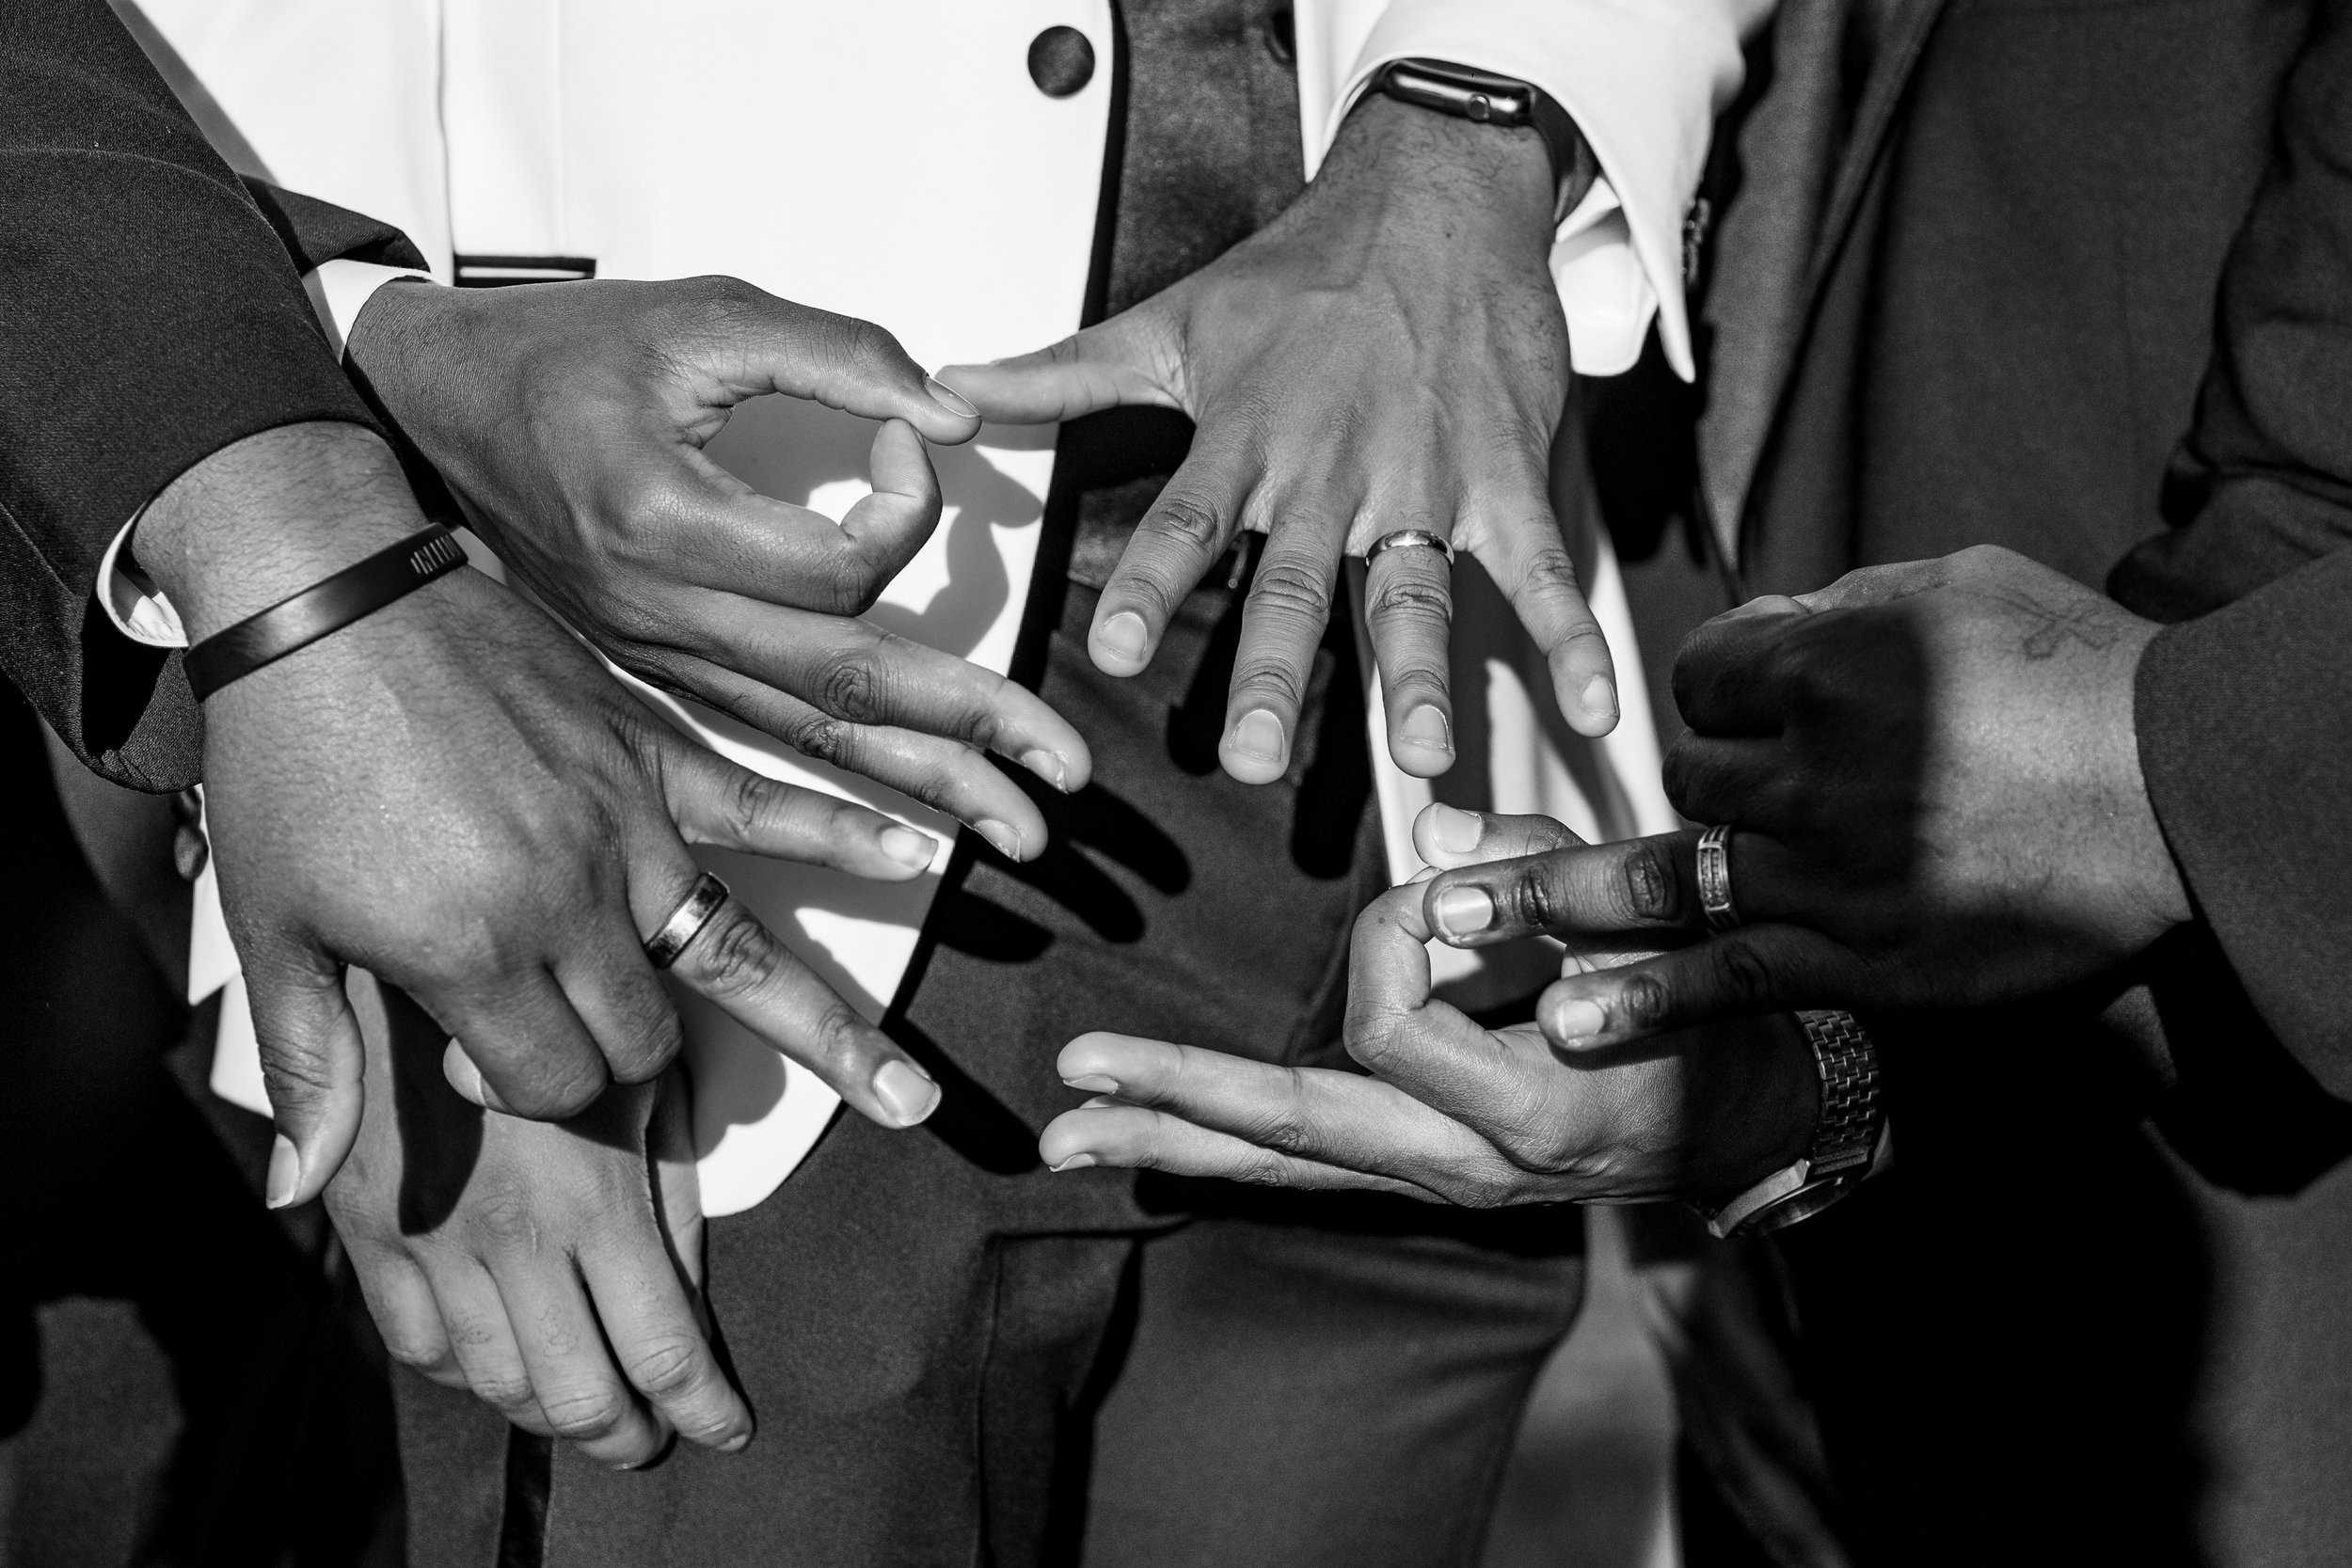 APRIL 20, 2019 | A GROOM AND HIS GROOMSMEN THROW UP SIGNS FOR THEIR HOOD.